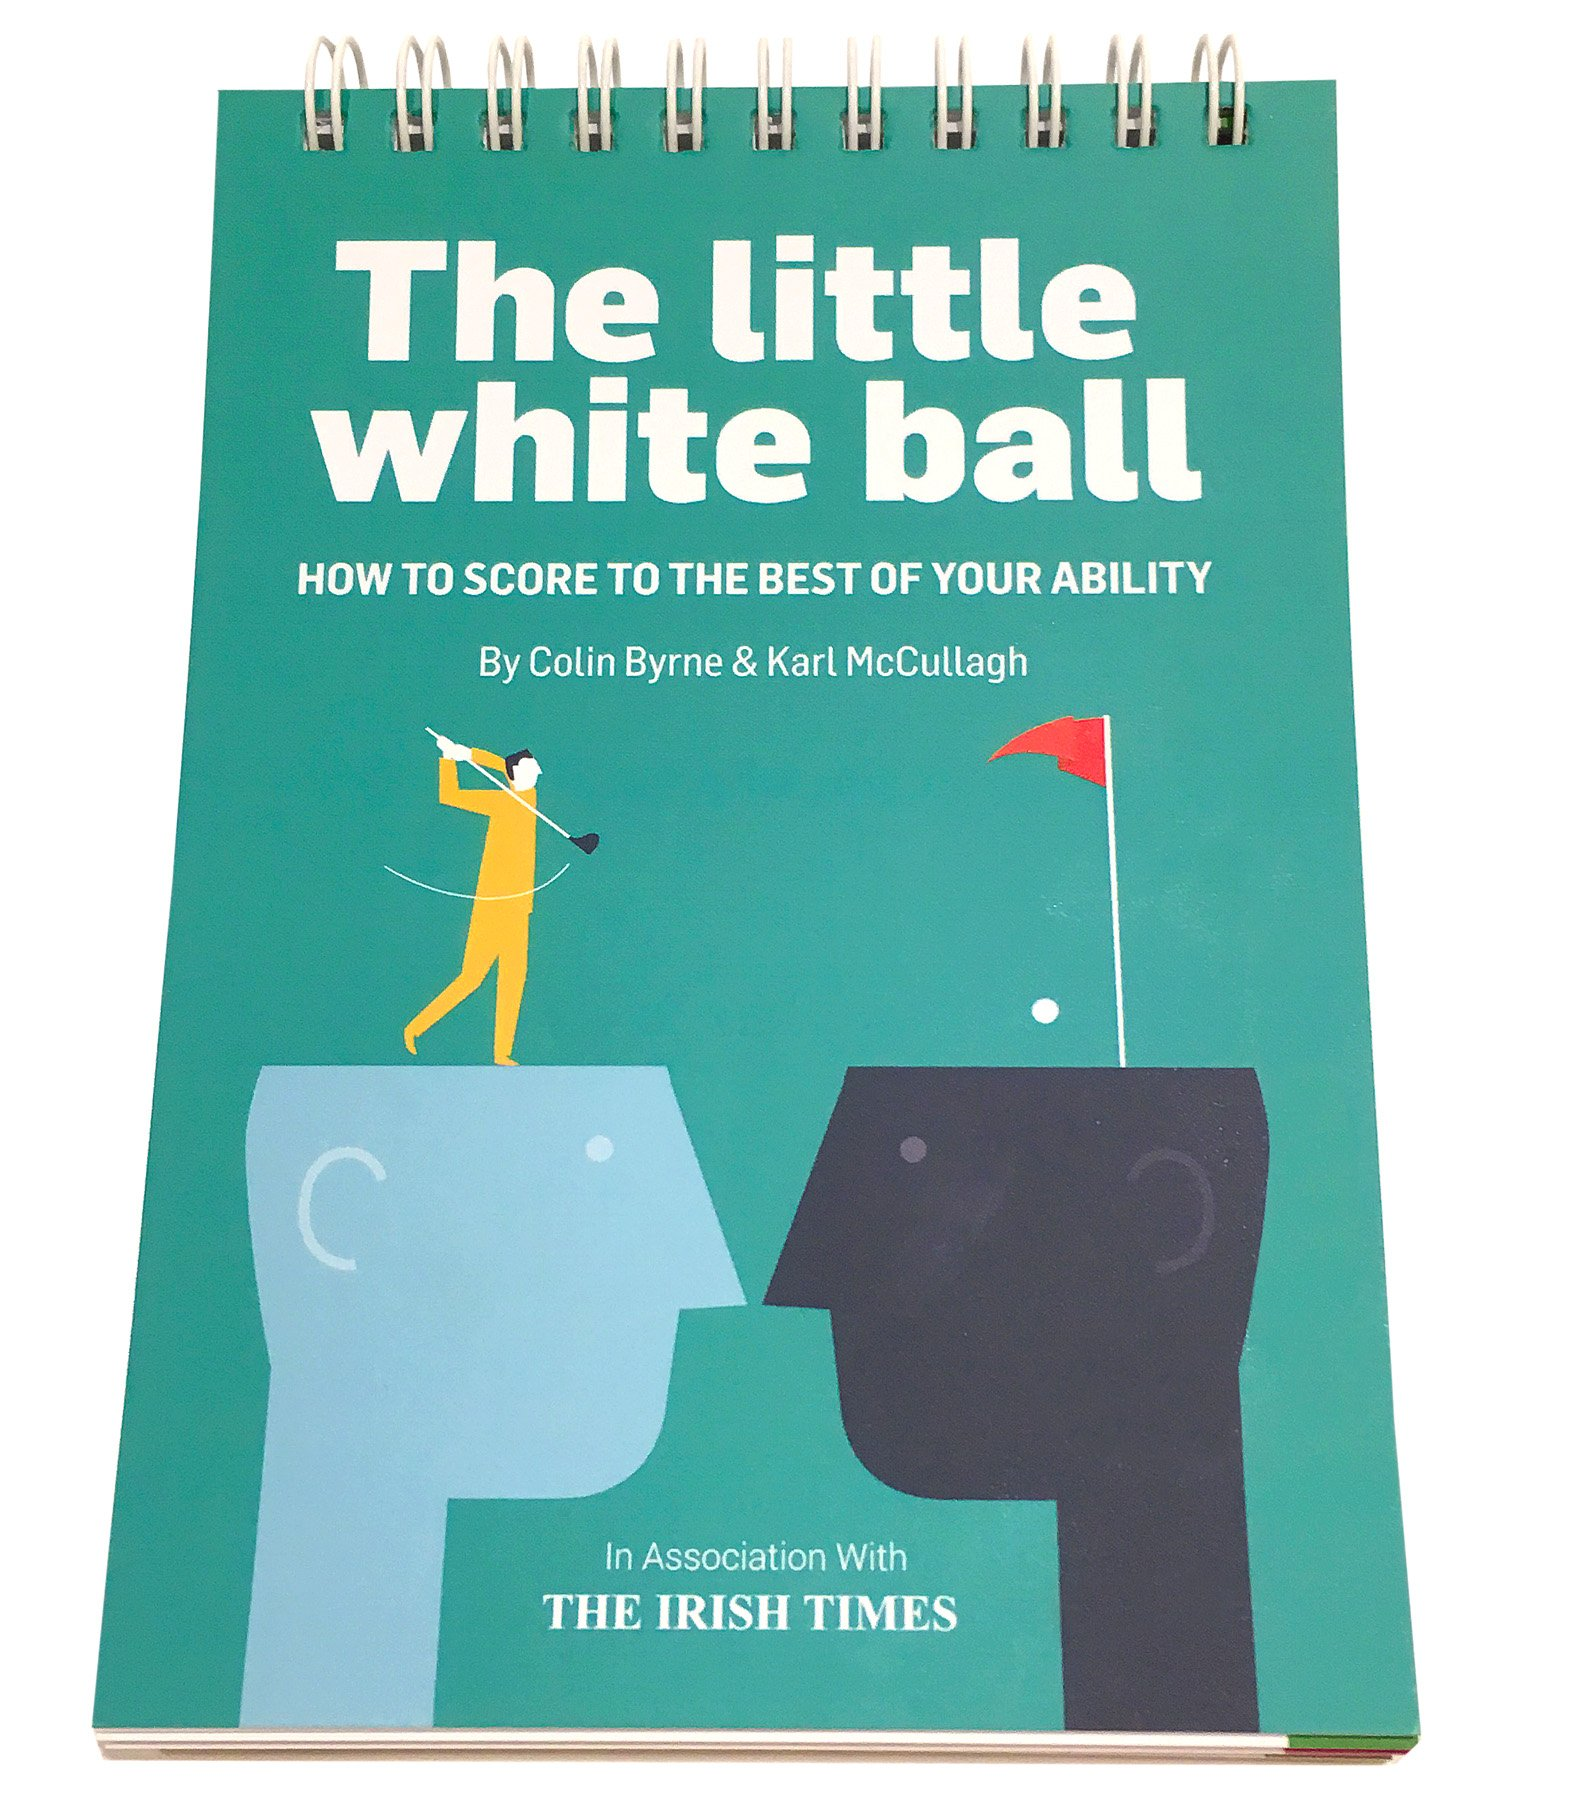 Image OfThe Little White Ball: How To Score To The Best Of Your Ability (English Edition)